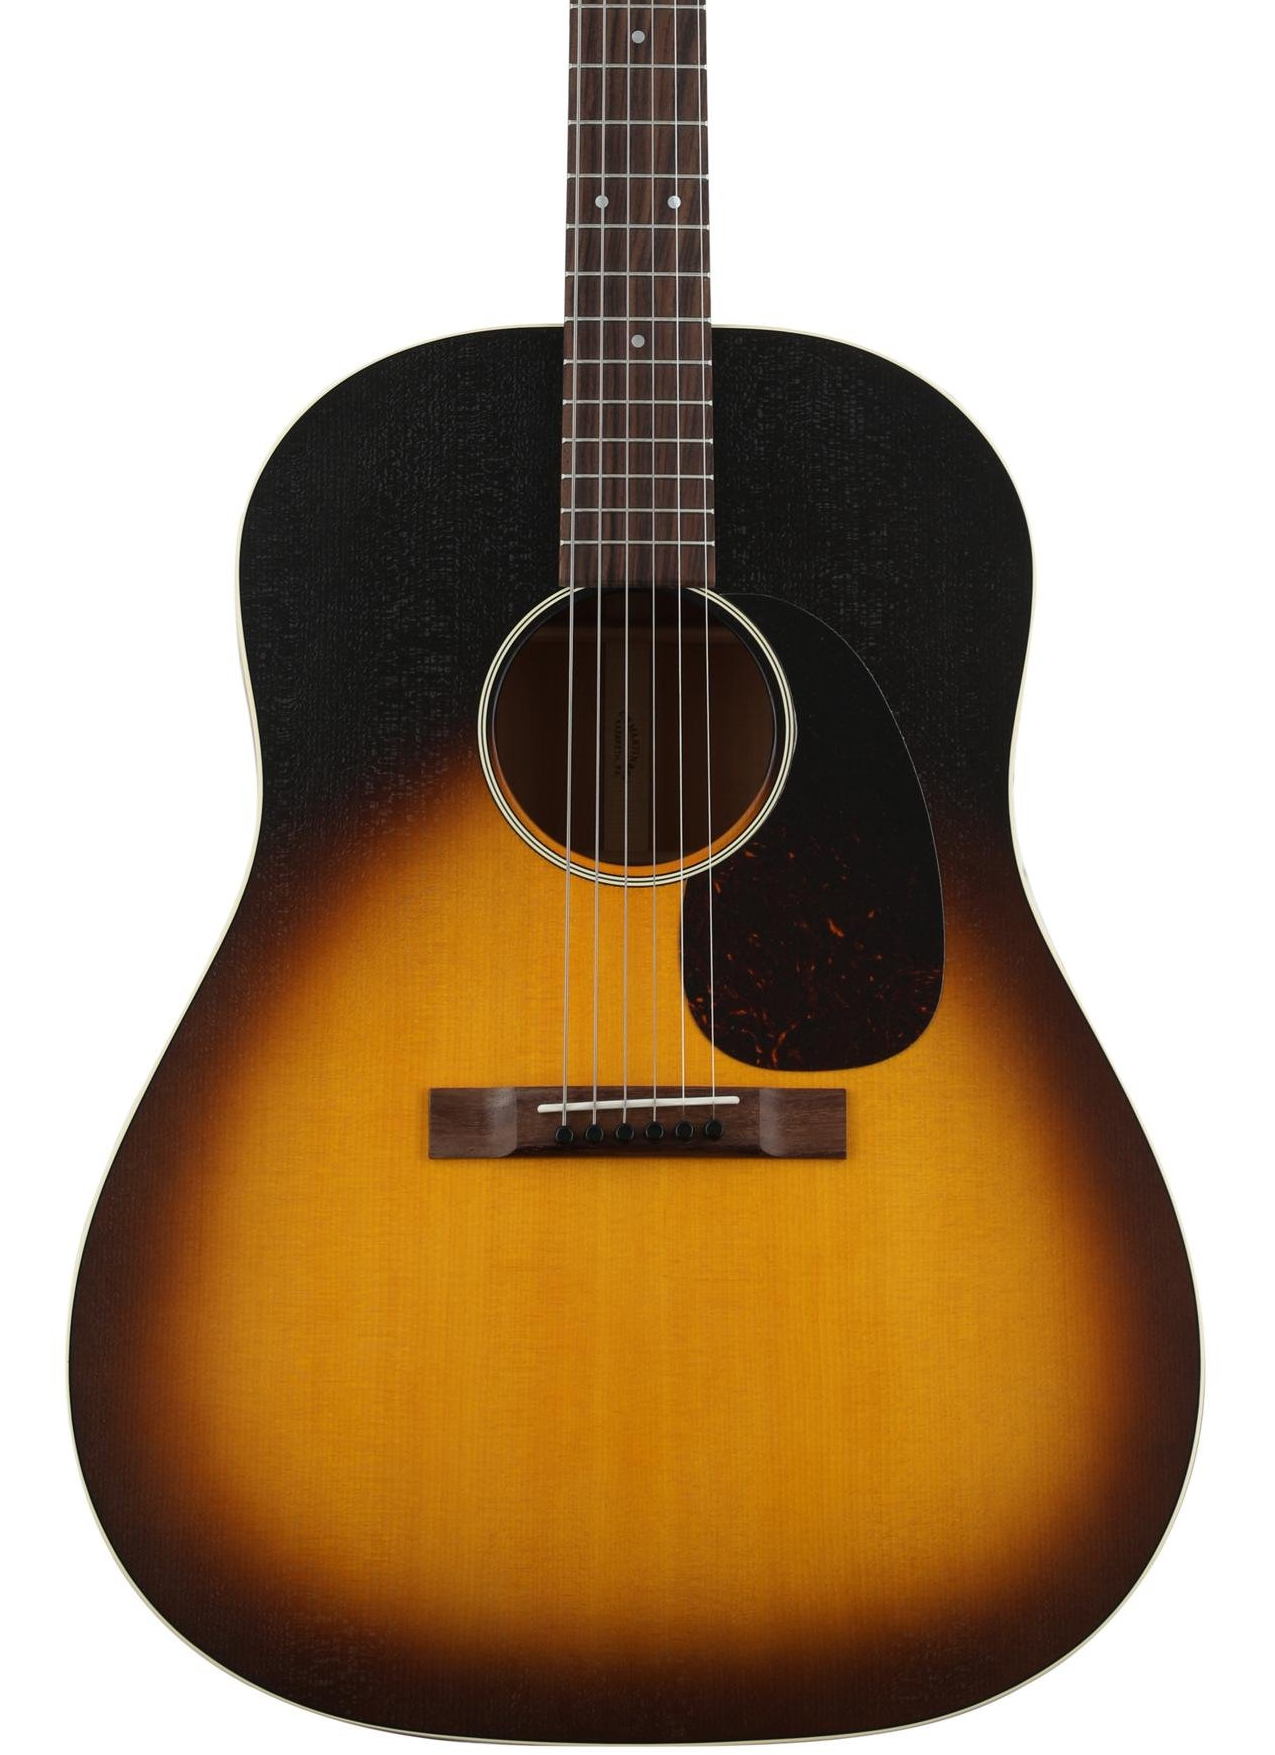 Martin DSS-17 Whiskey Sunset burst